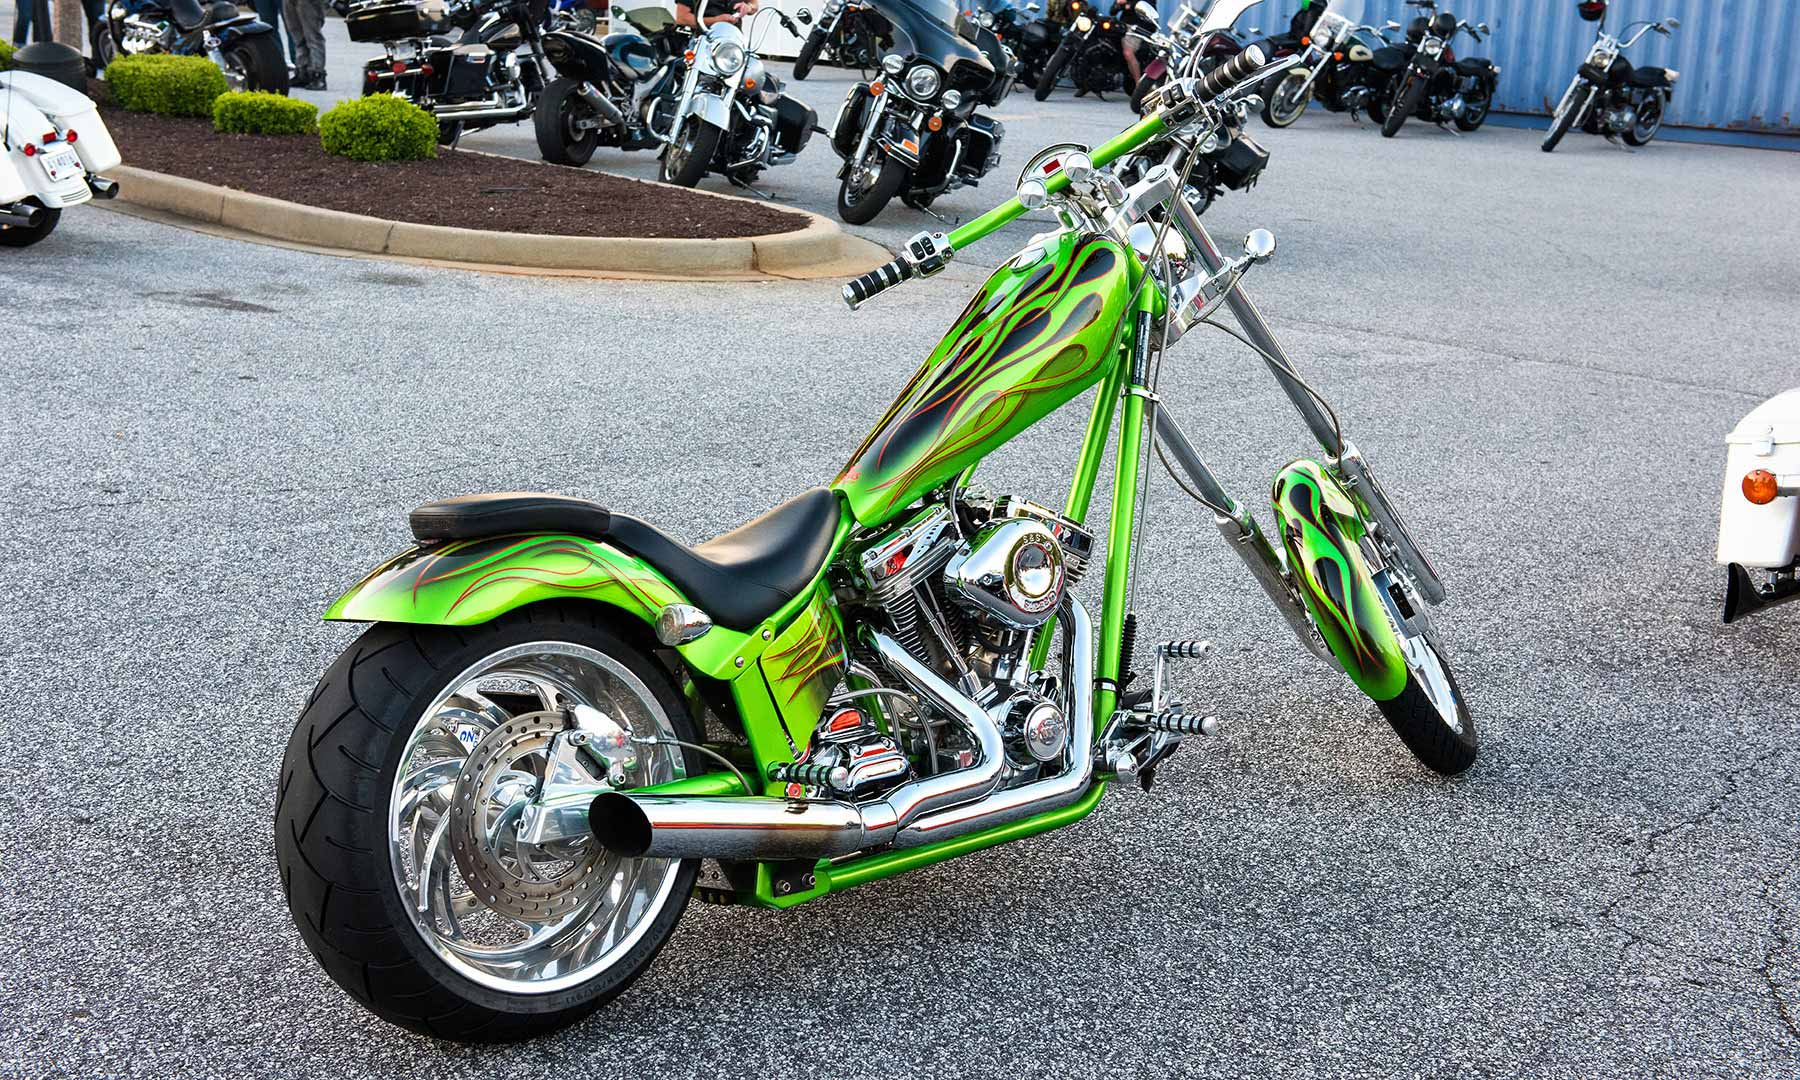 A green chopper - In a motorcycle parking